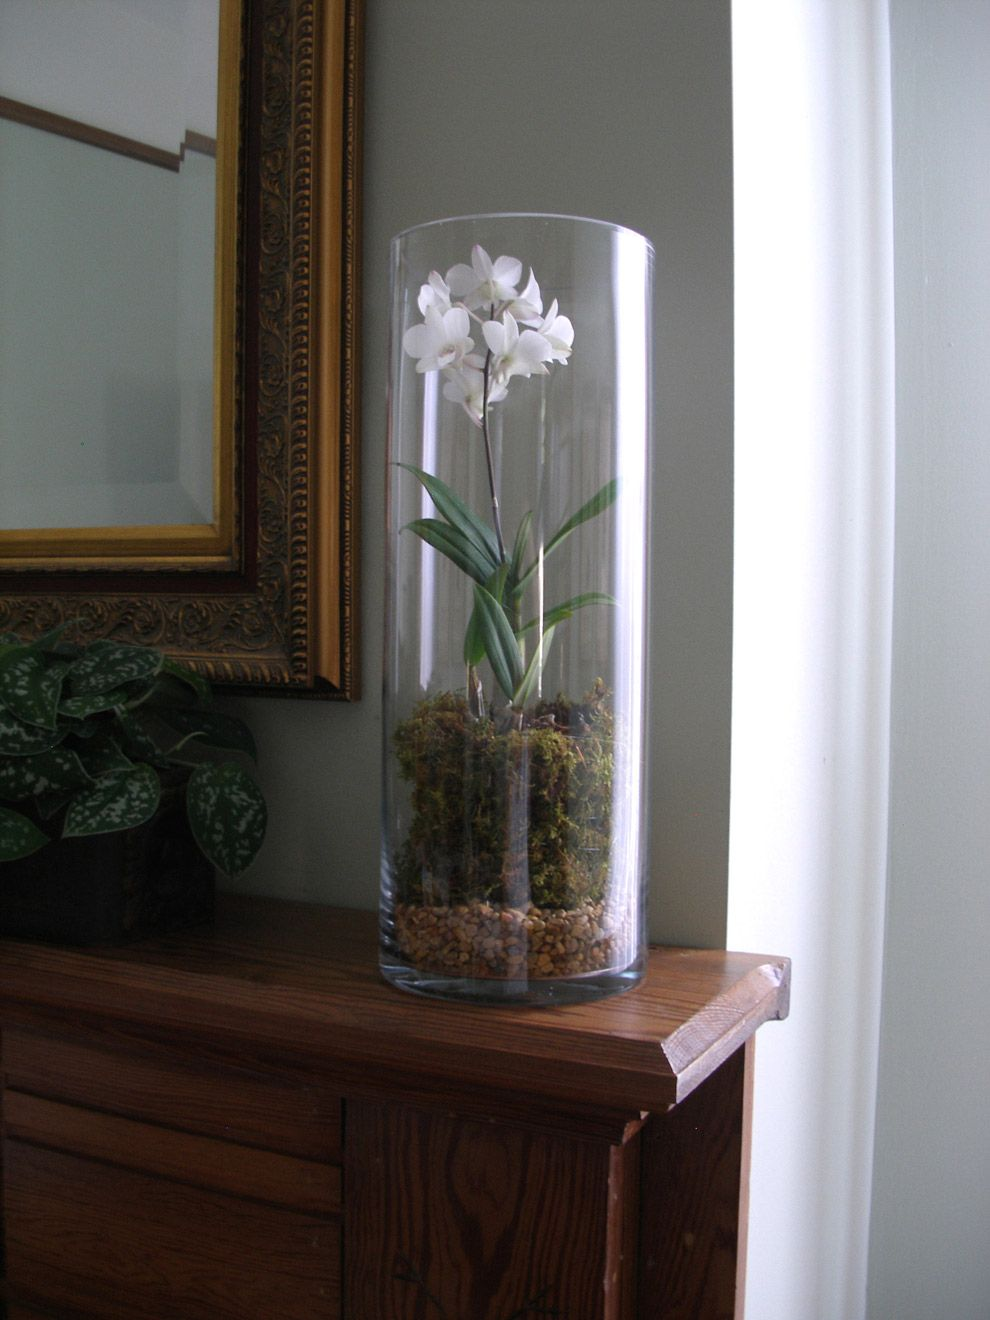 Using round cylinder clear glass extra tall vase for orchid terrific image of dining table decoration using round cylinder clear glass extra tall vase fabulous home decoration ideas with extra tall vase reviewsmspy